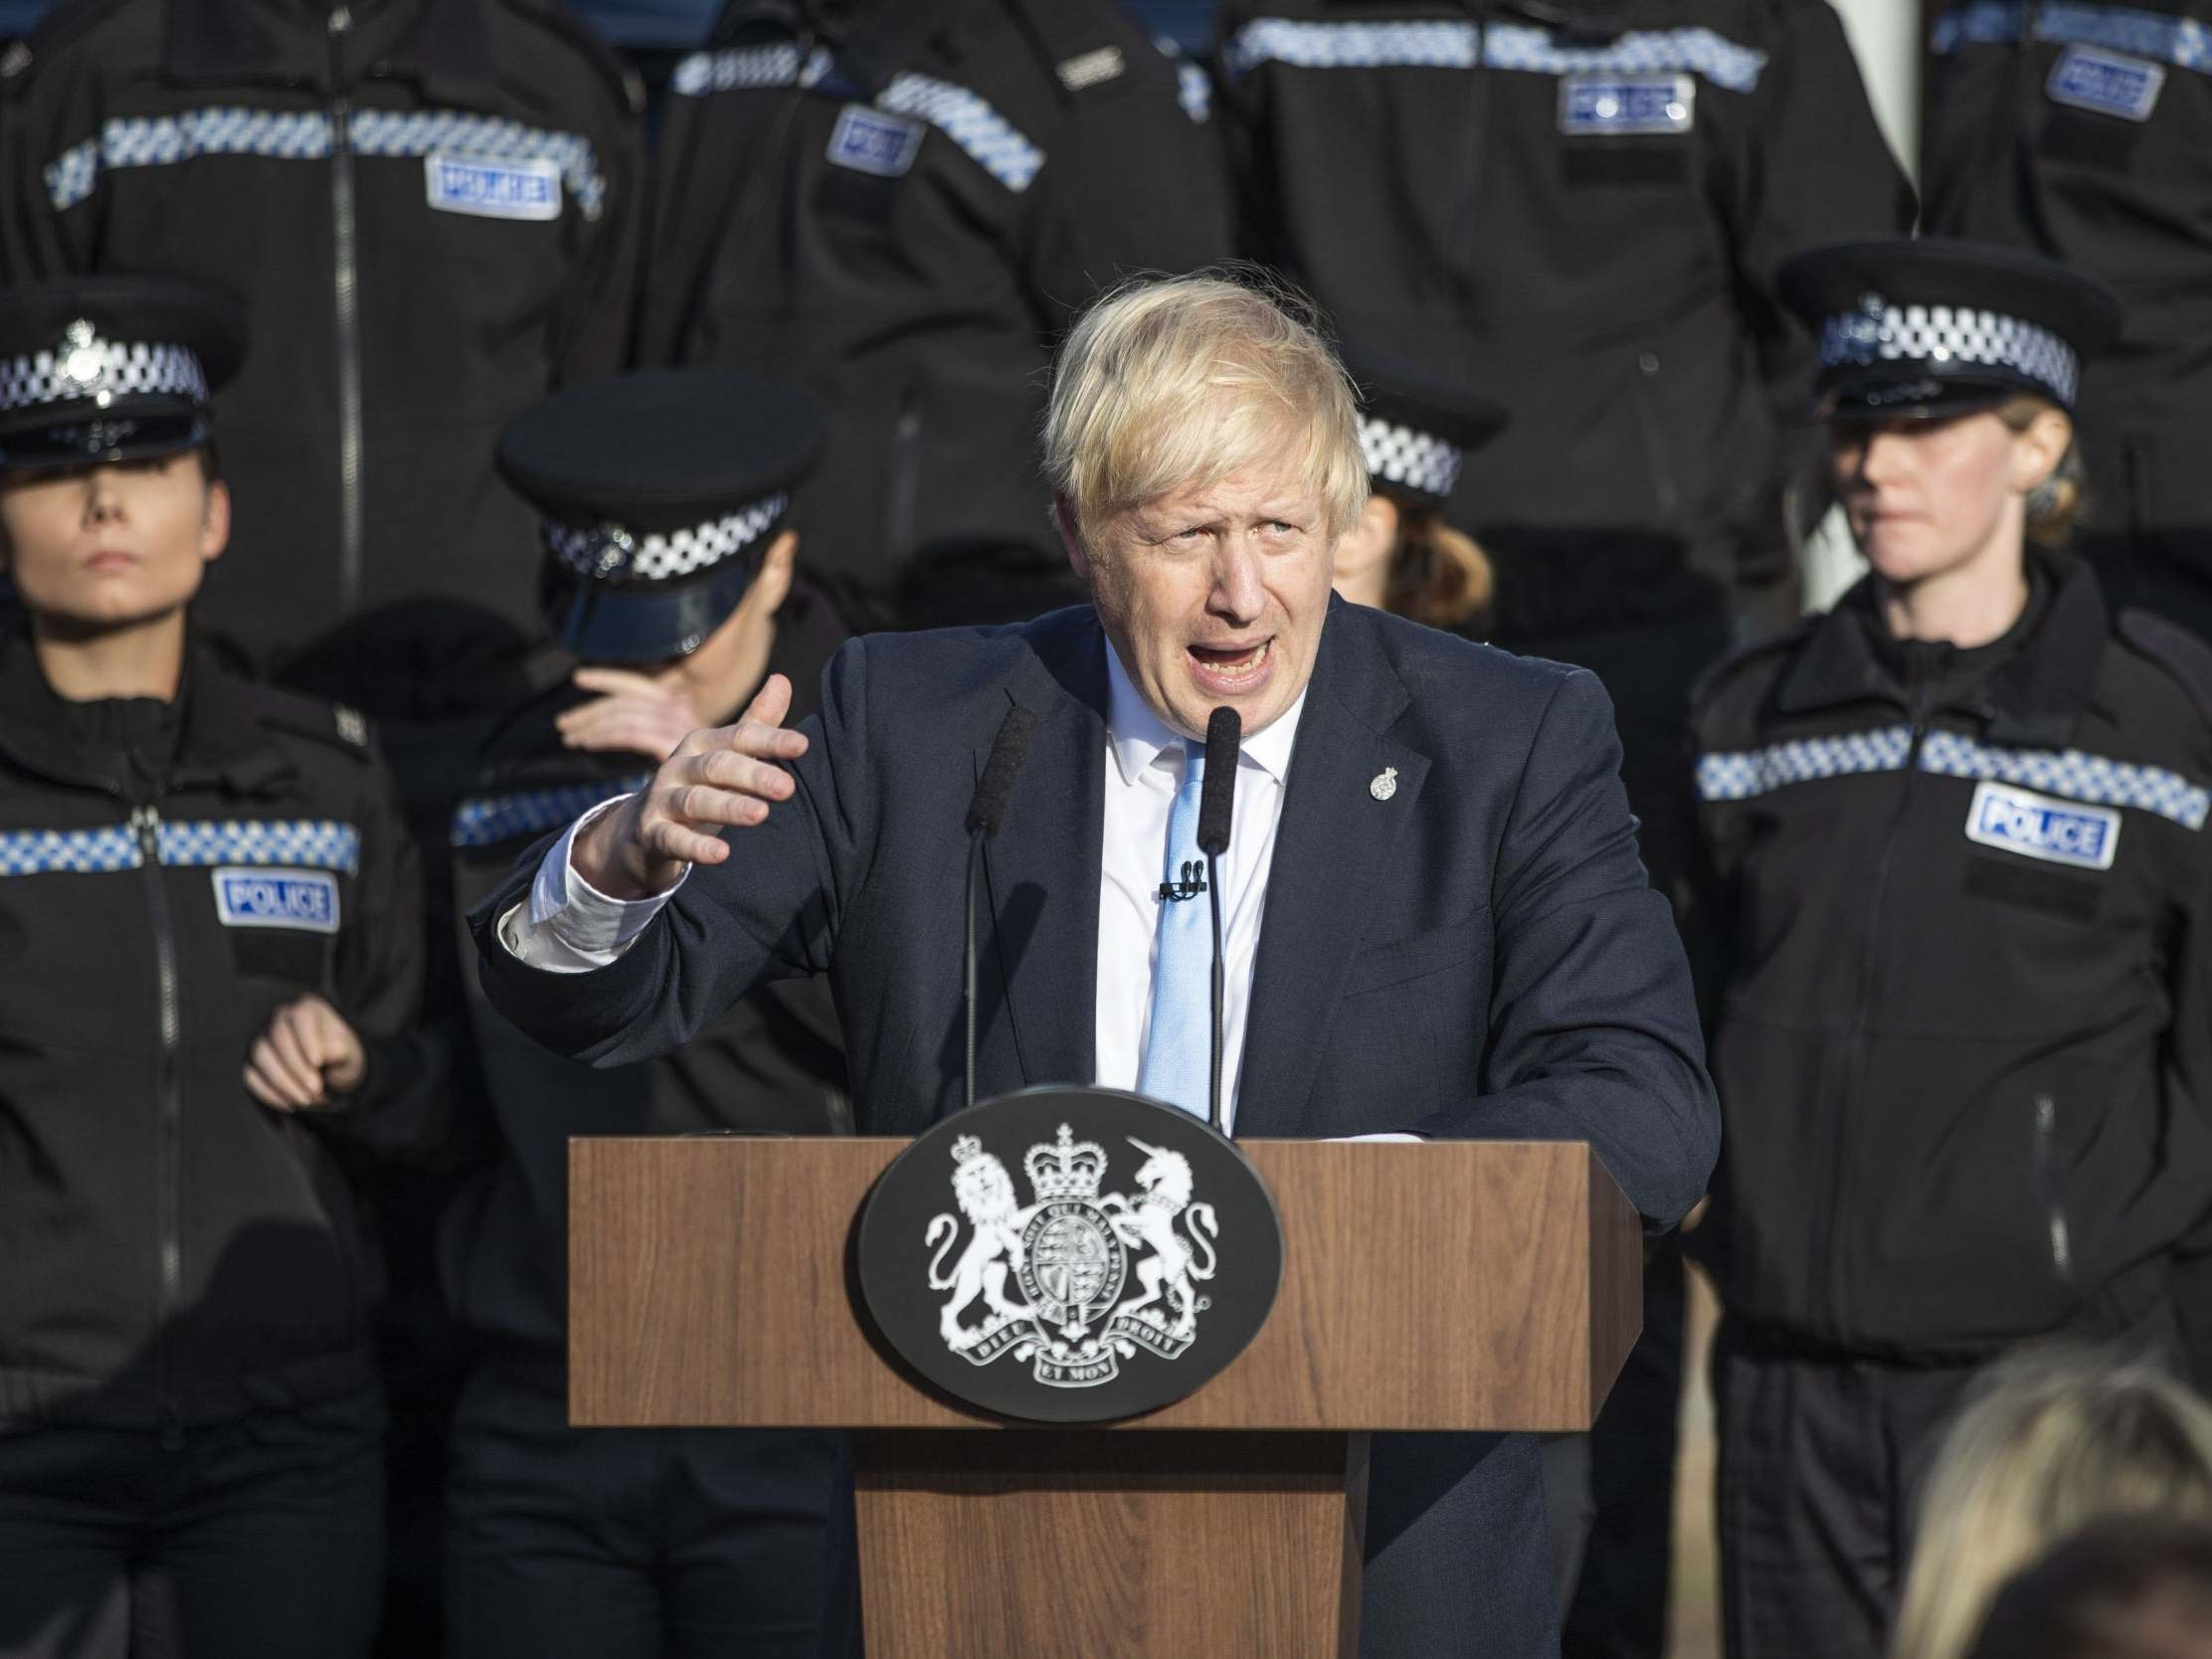 Police chief issues extraordinary condemnation of Boris Johnson for using 'my officers as a backdrop' 16